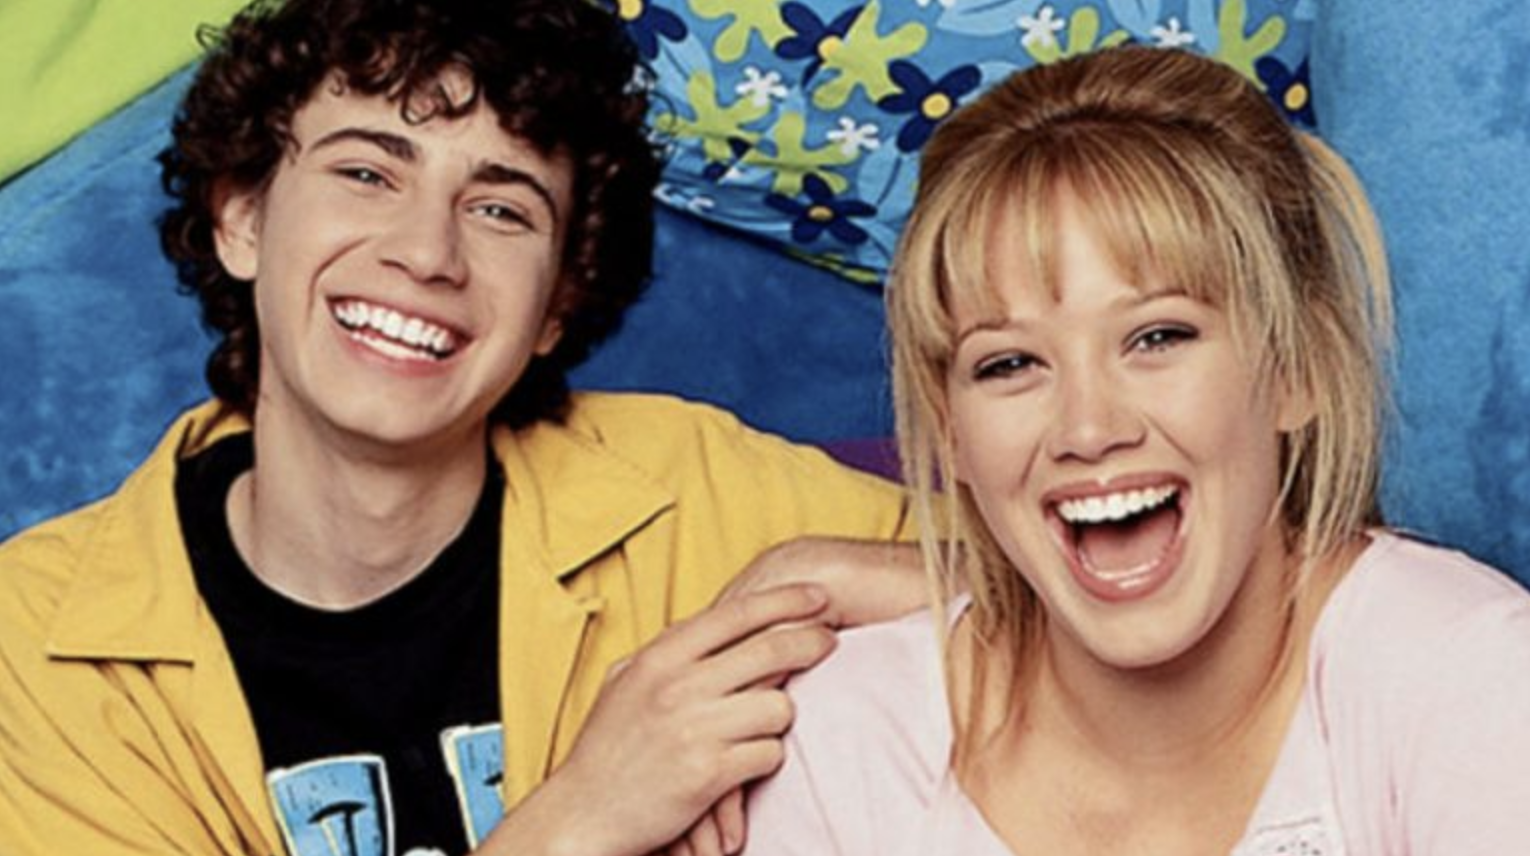 Gordo Lizzie McGuire with Lizzie